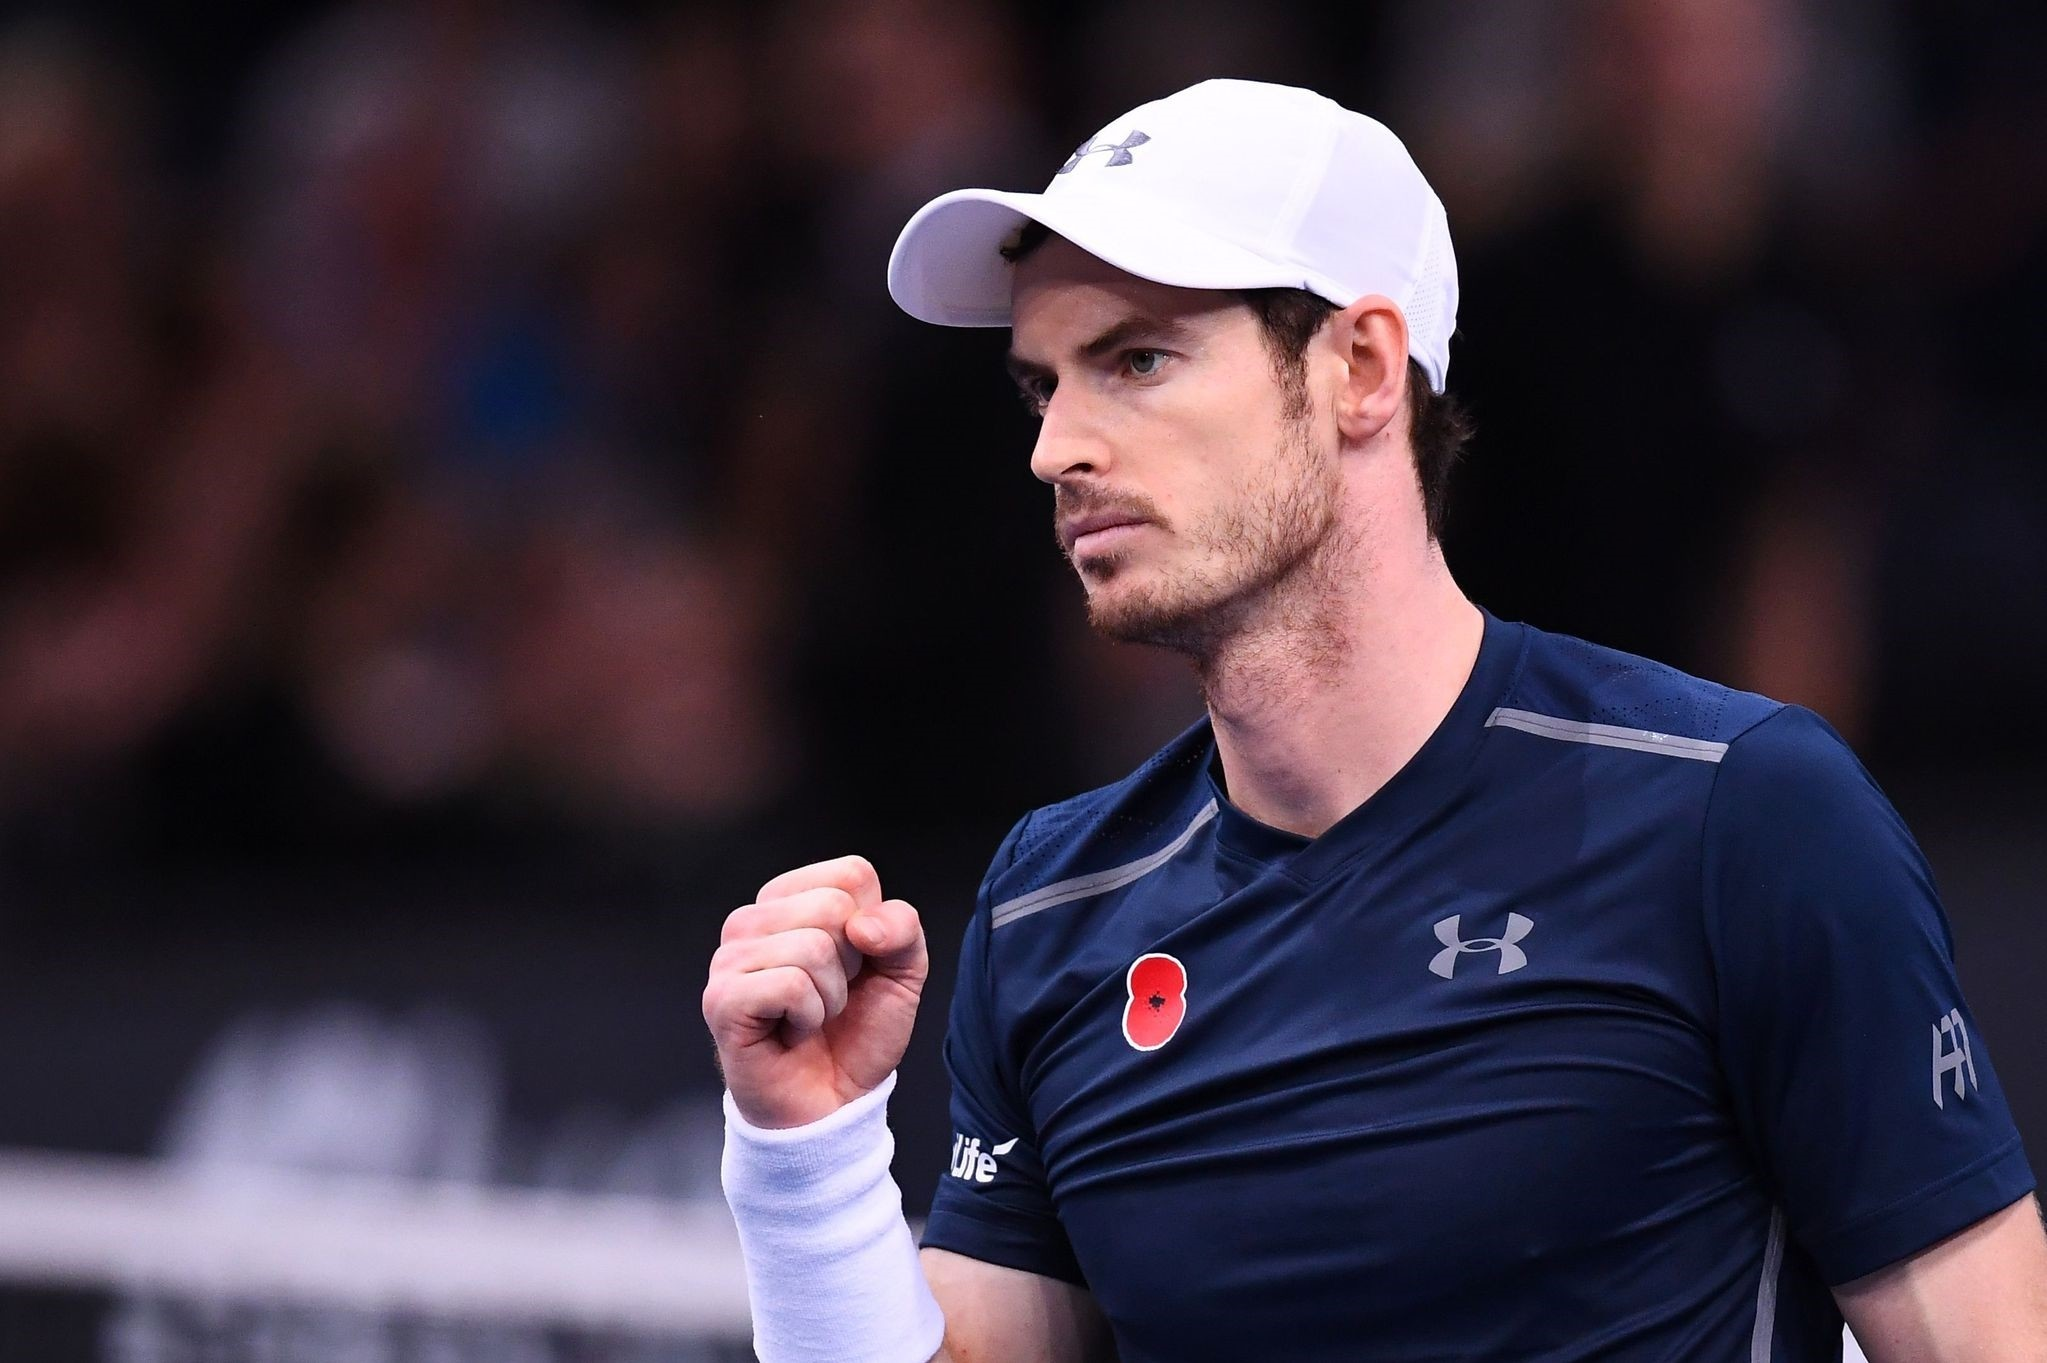 Murray celebrates after winning his quarter-final tennis match against Tomas Berdych at the ATP World Tour Masters 1000 indoor tournament in Paris on Nov. 4, 2016. (AFP Photo)